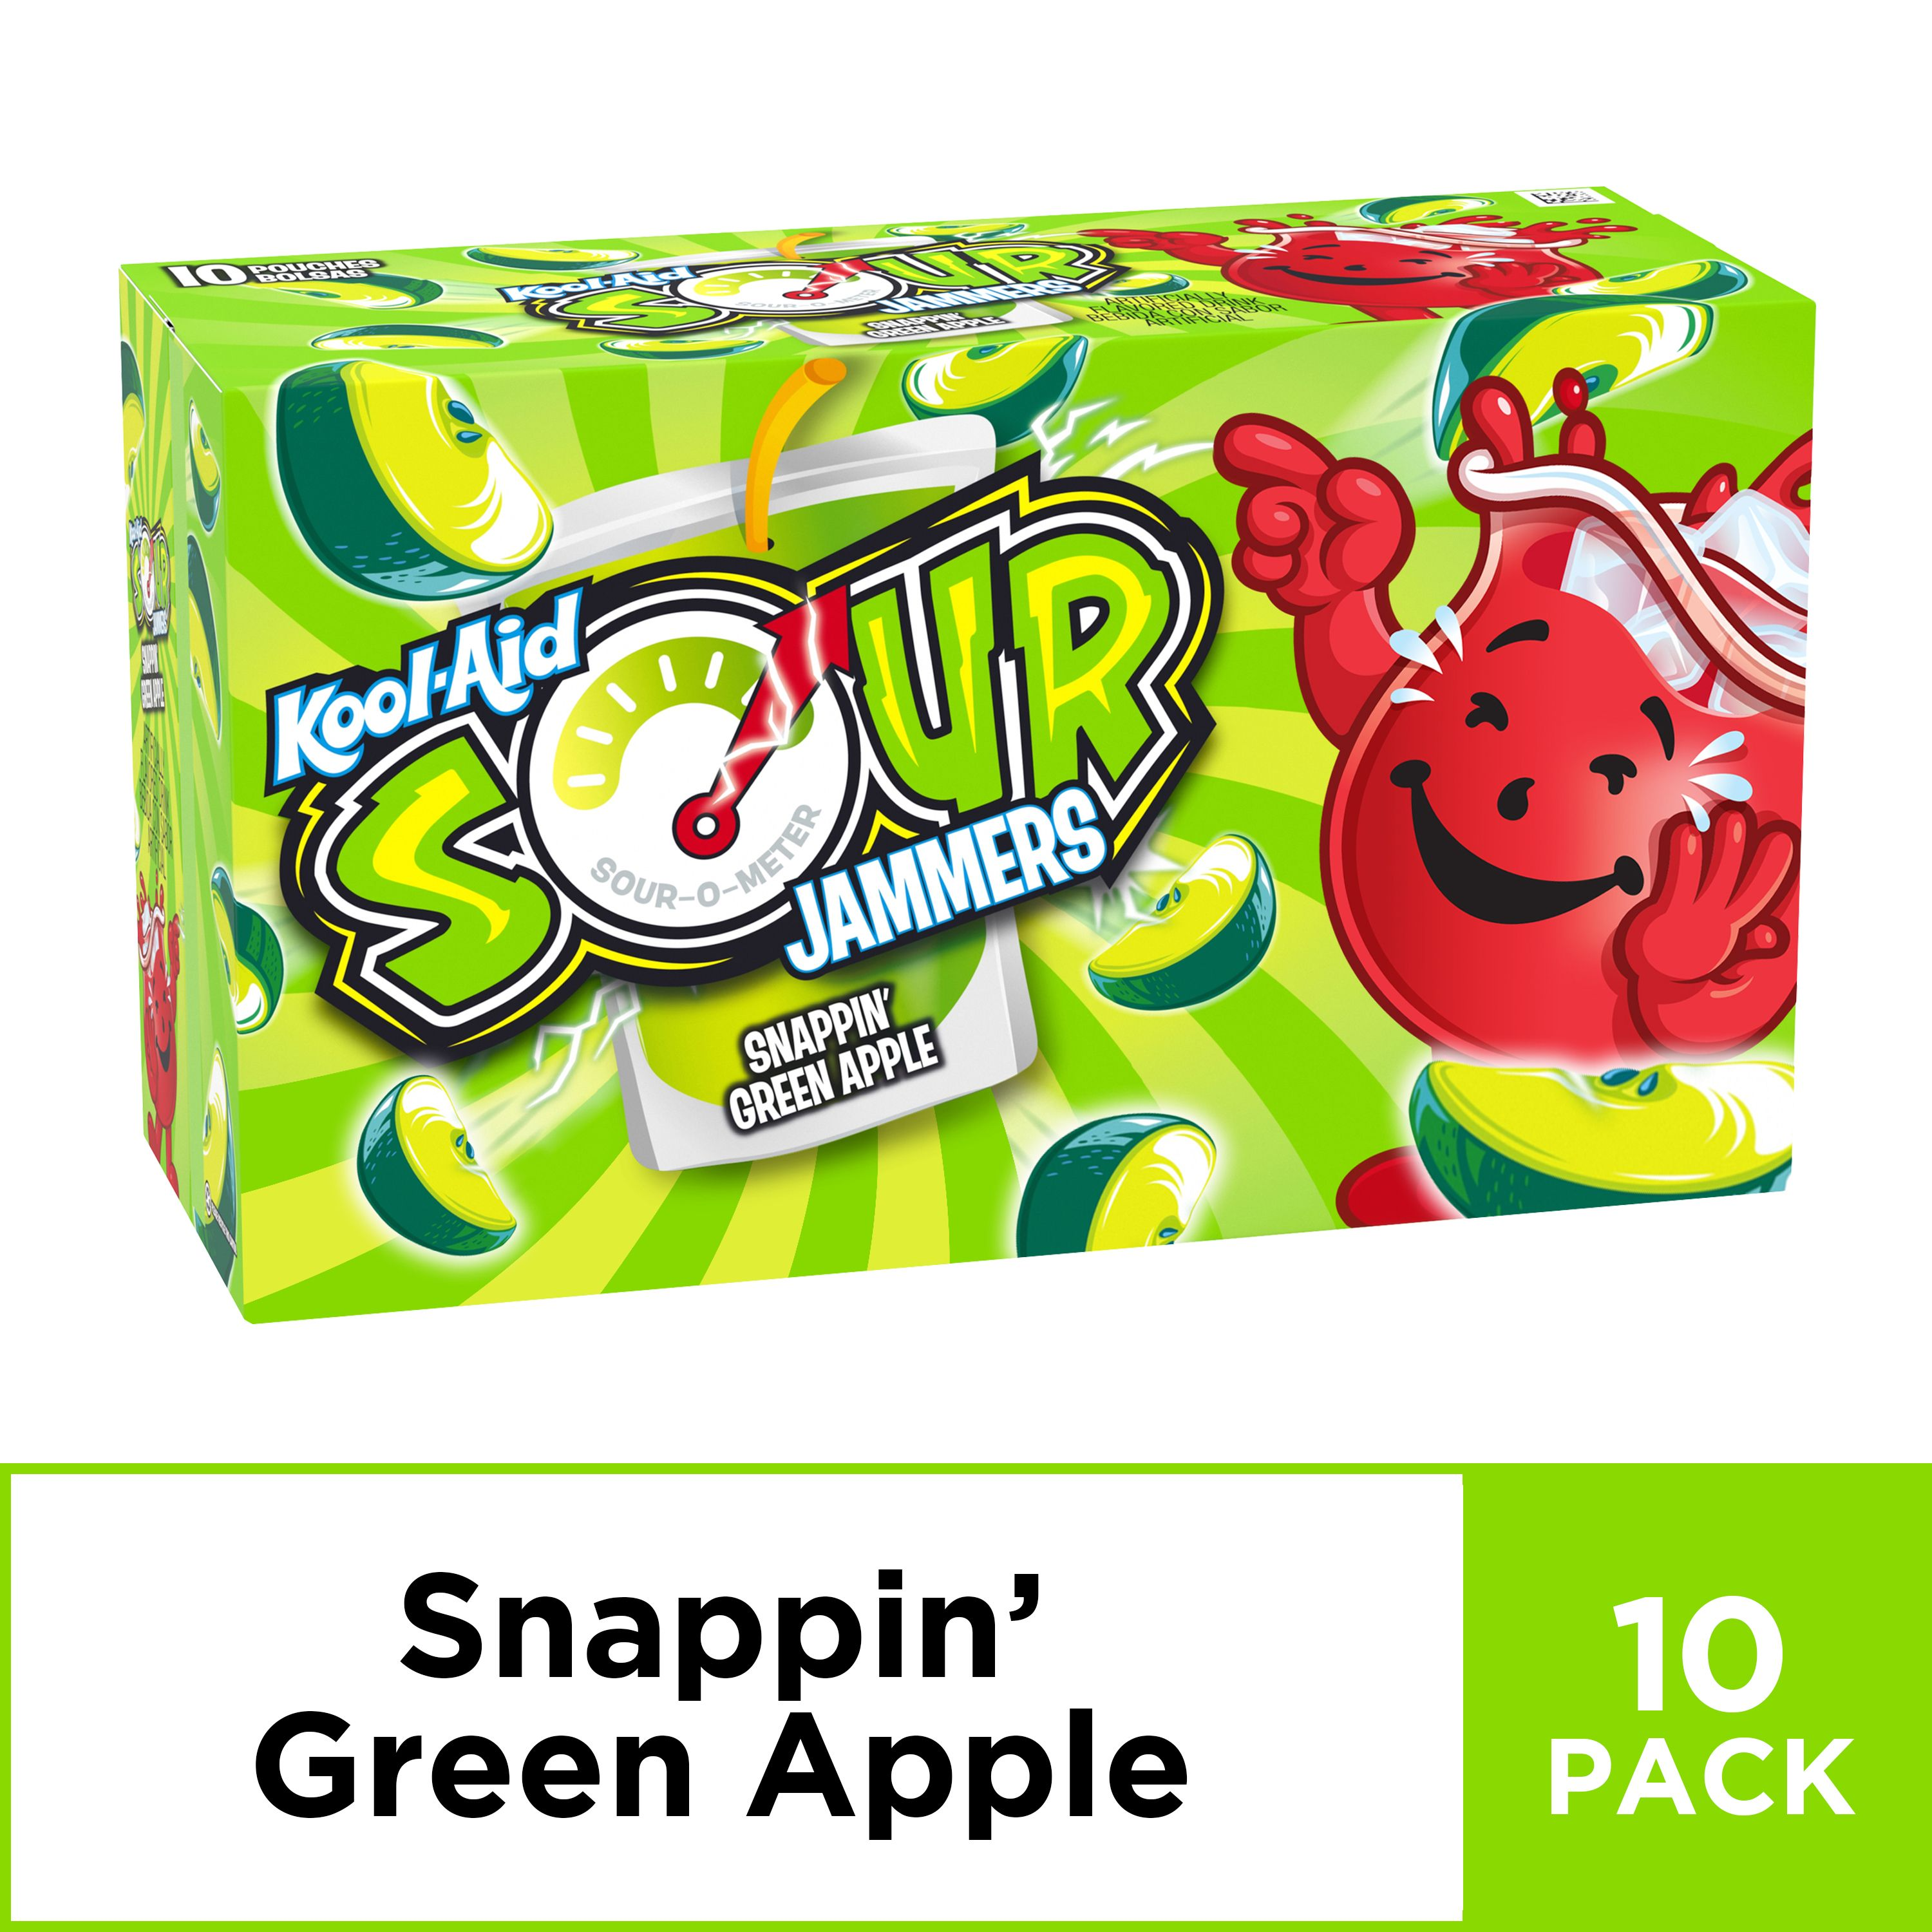 Kool Aid Sour Jammers Snappin Green Apple Artificially Flavored Soft Drink 10 Ct Box 6 Fl Oz Pouches Walmart Com Flavored Drinks Kool Aid Apple Drinks